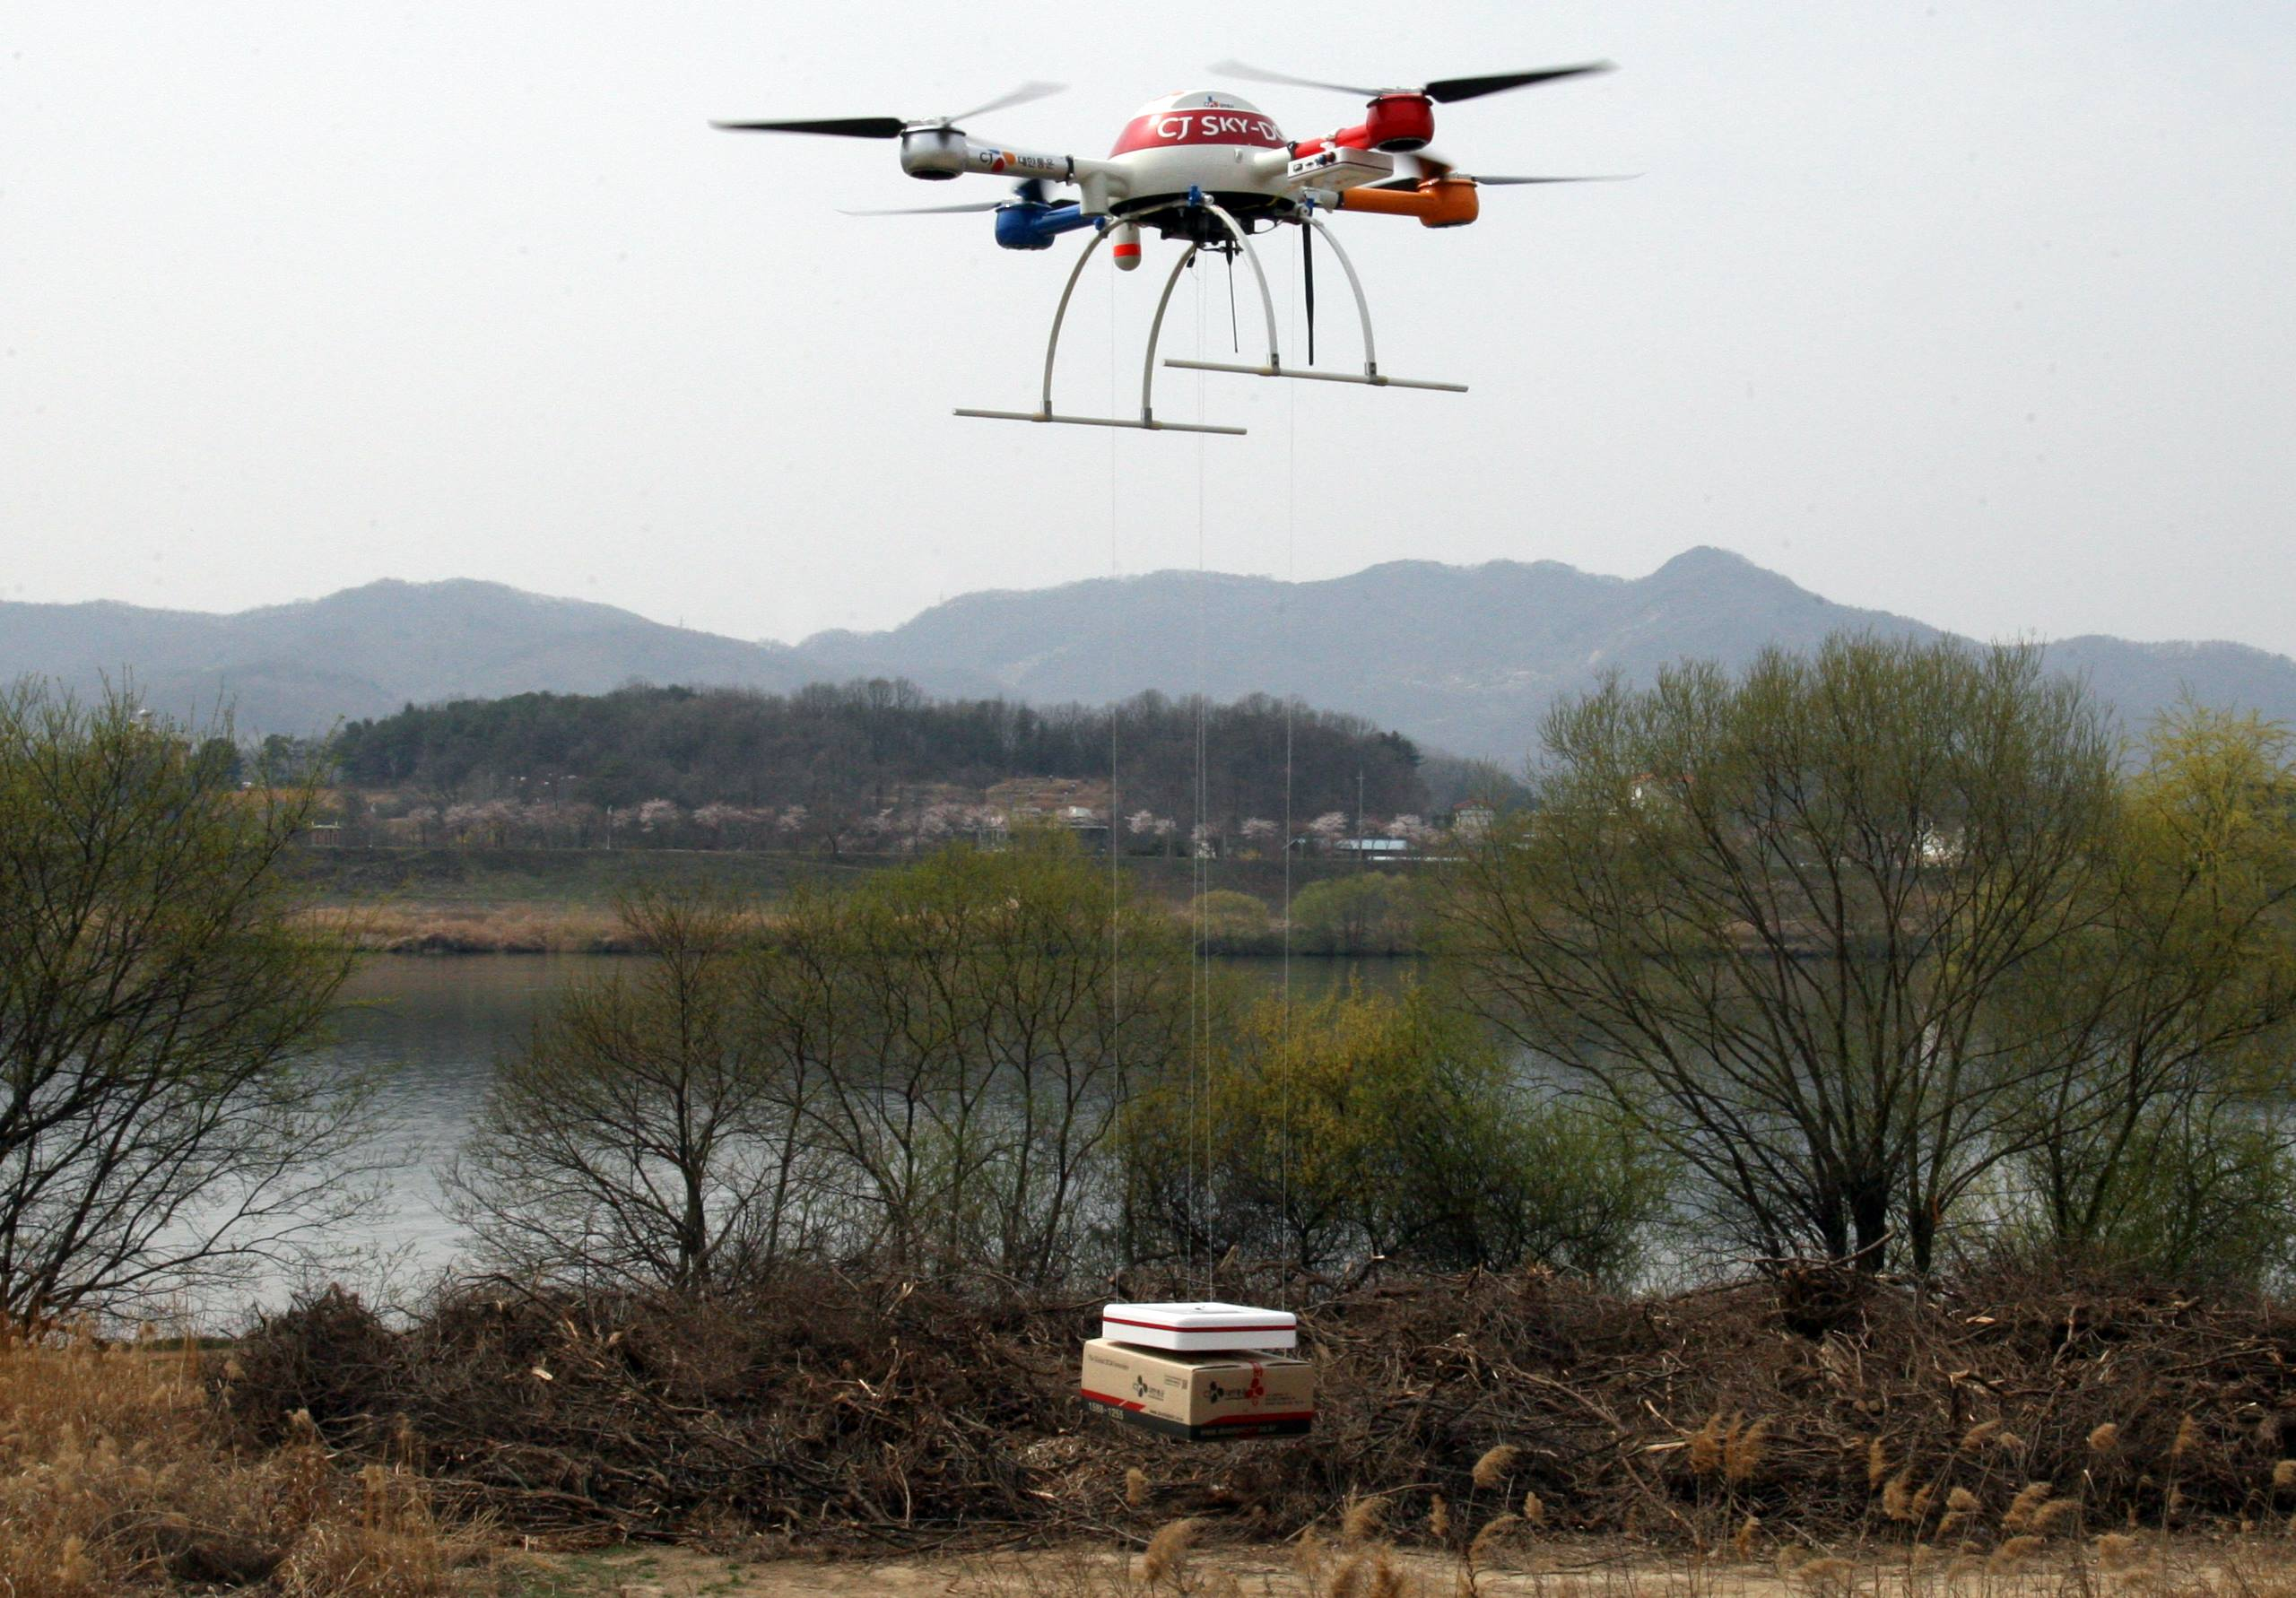 CJ Korea Express Claims to Develop World's First New Drone